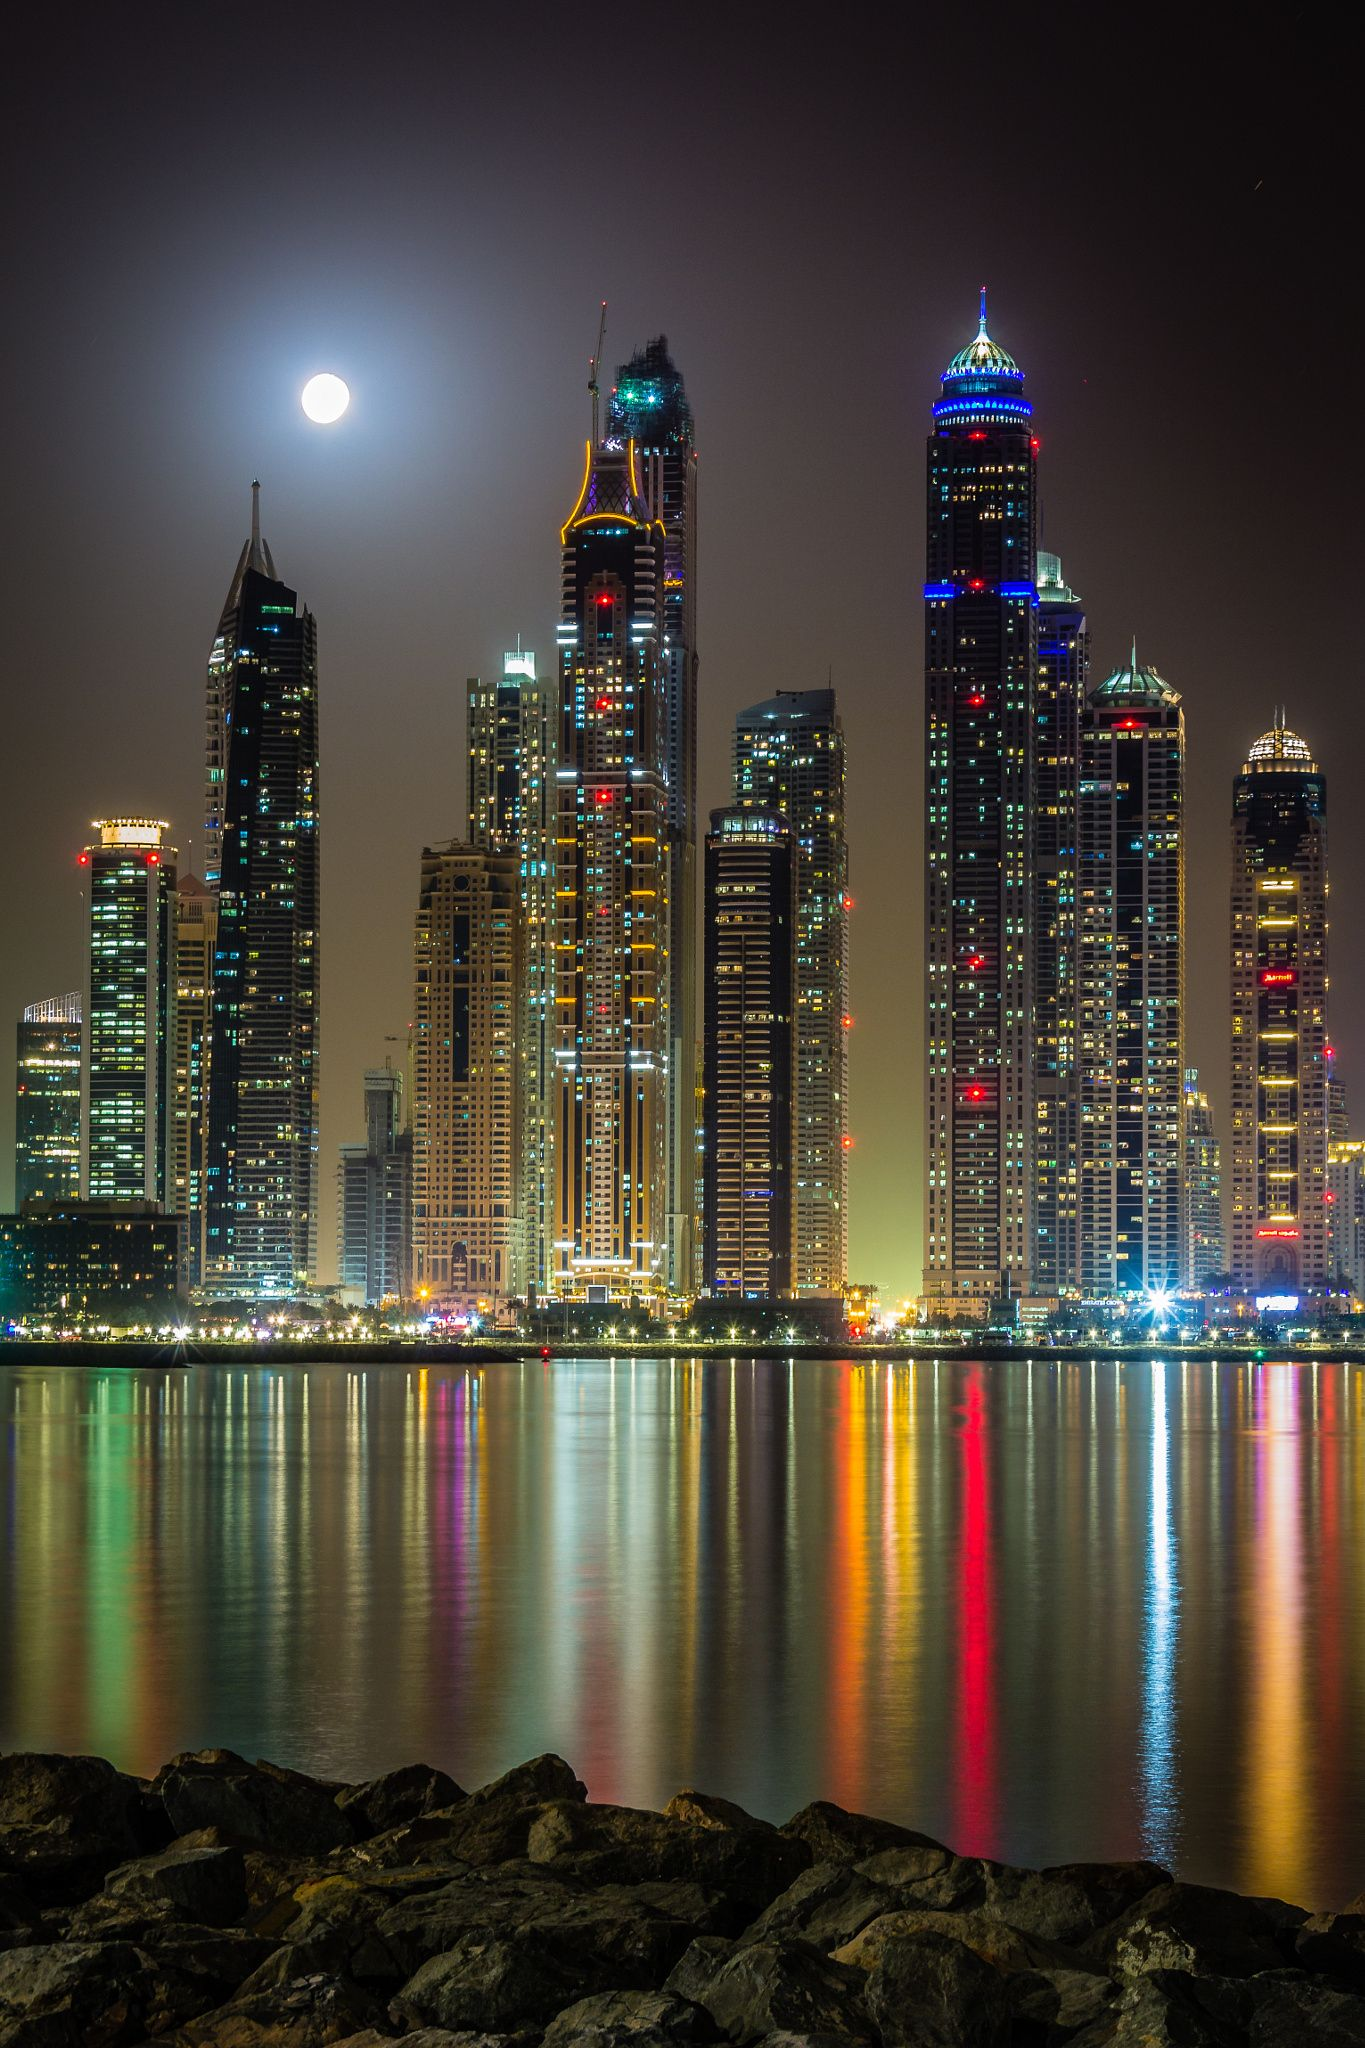 ~~Full Moon | nightscape, view from the Dubai marina | by Björn Witt~~ | City ~ Beyond the Neon ...